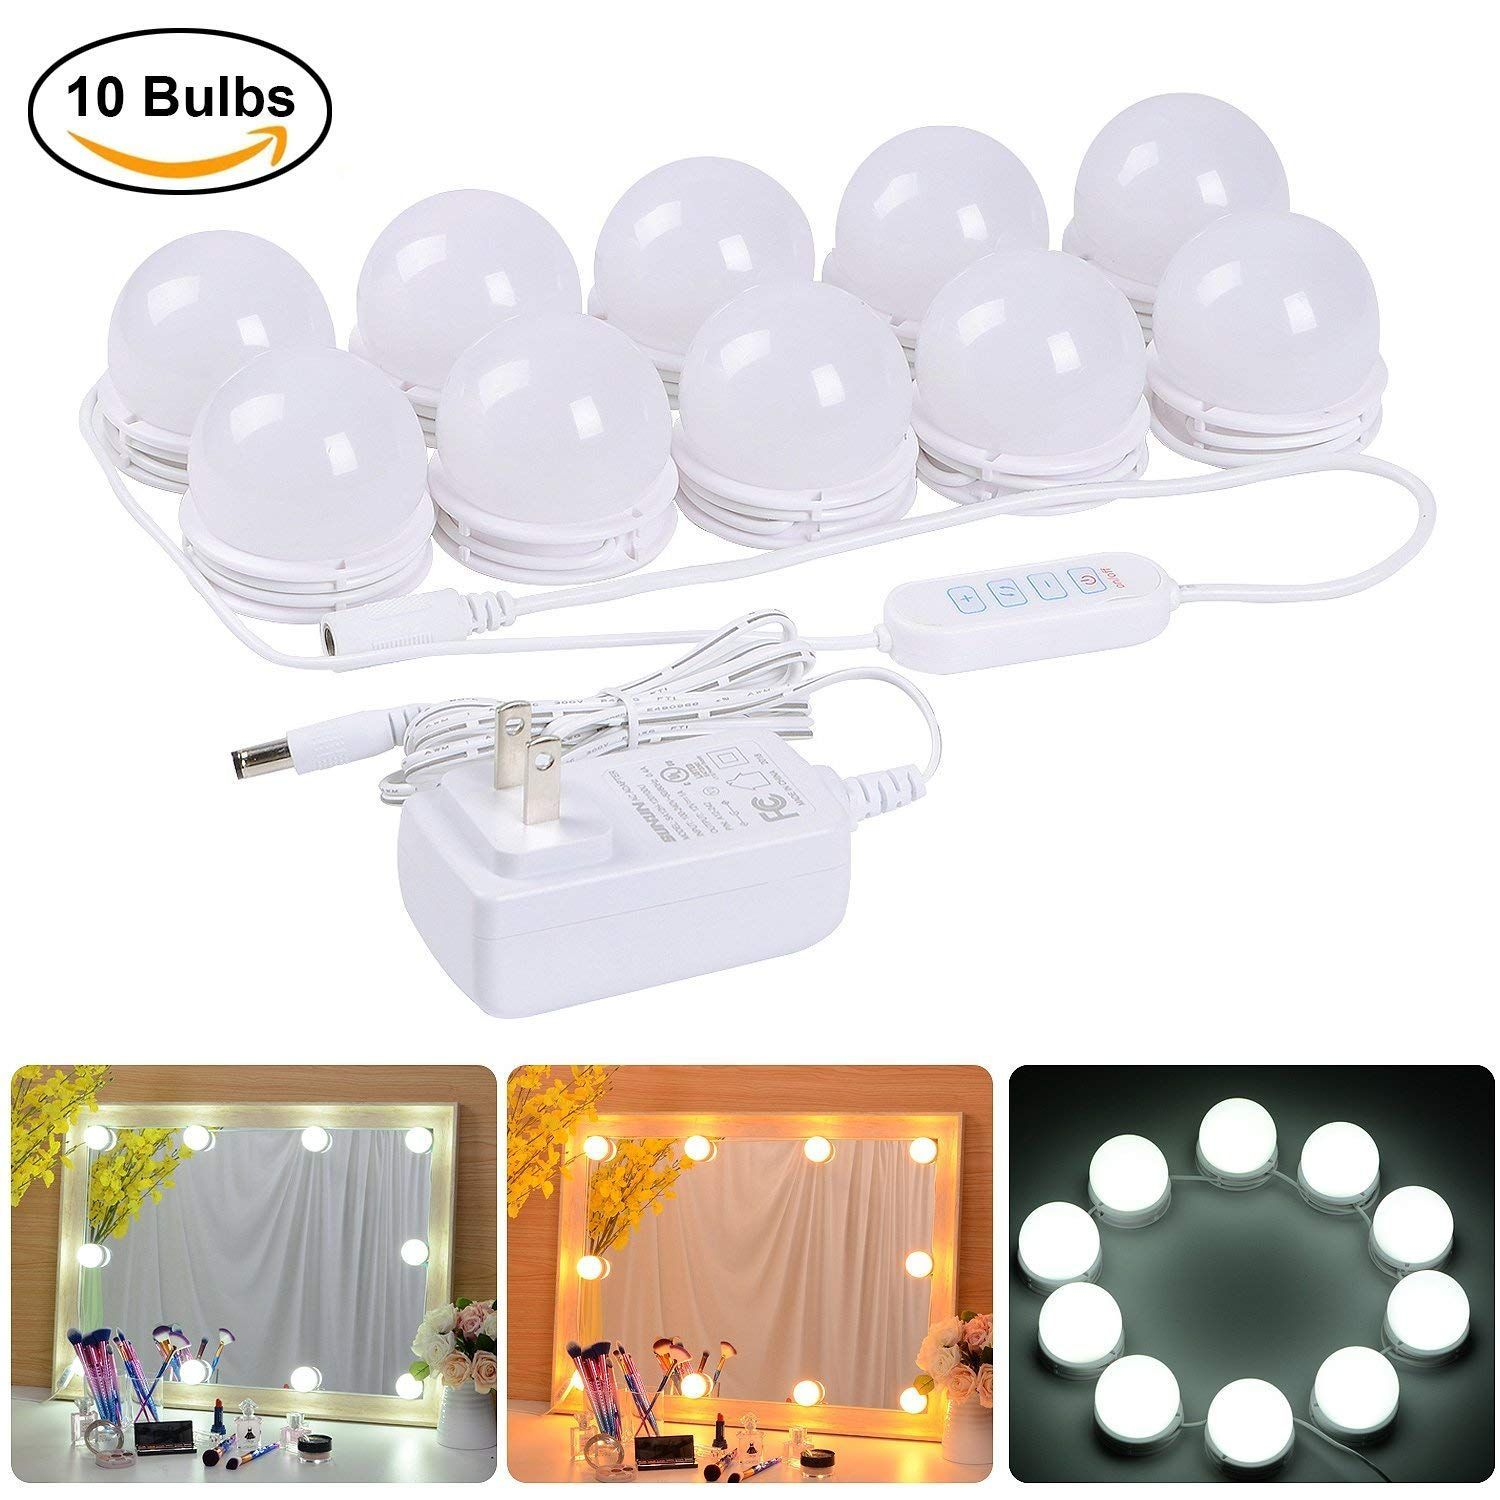 Coolmade Hollywood Style LED Vanity Mirror Lights Kit with